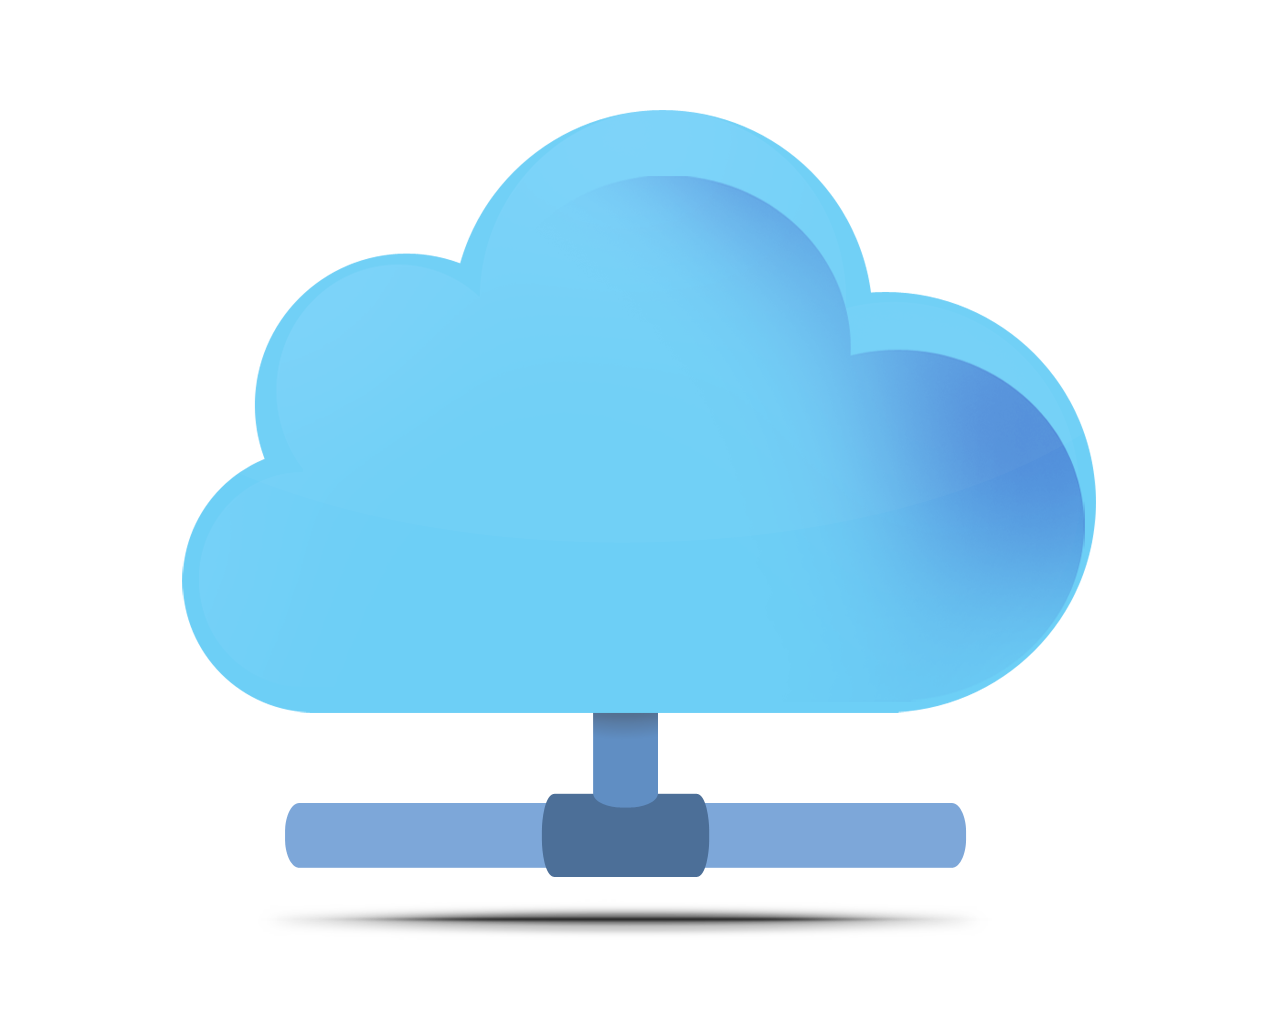 Cloud Service Clipart - Clipart Suggest